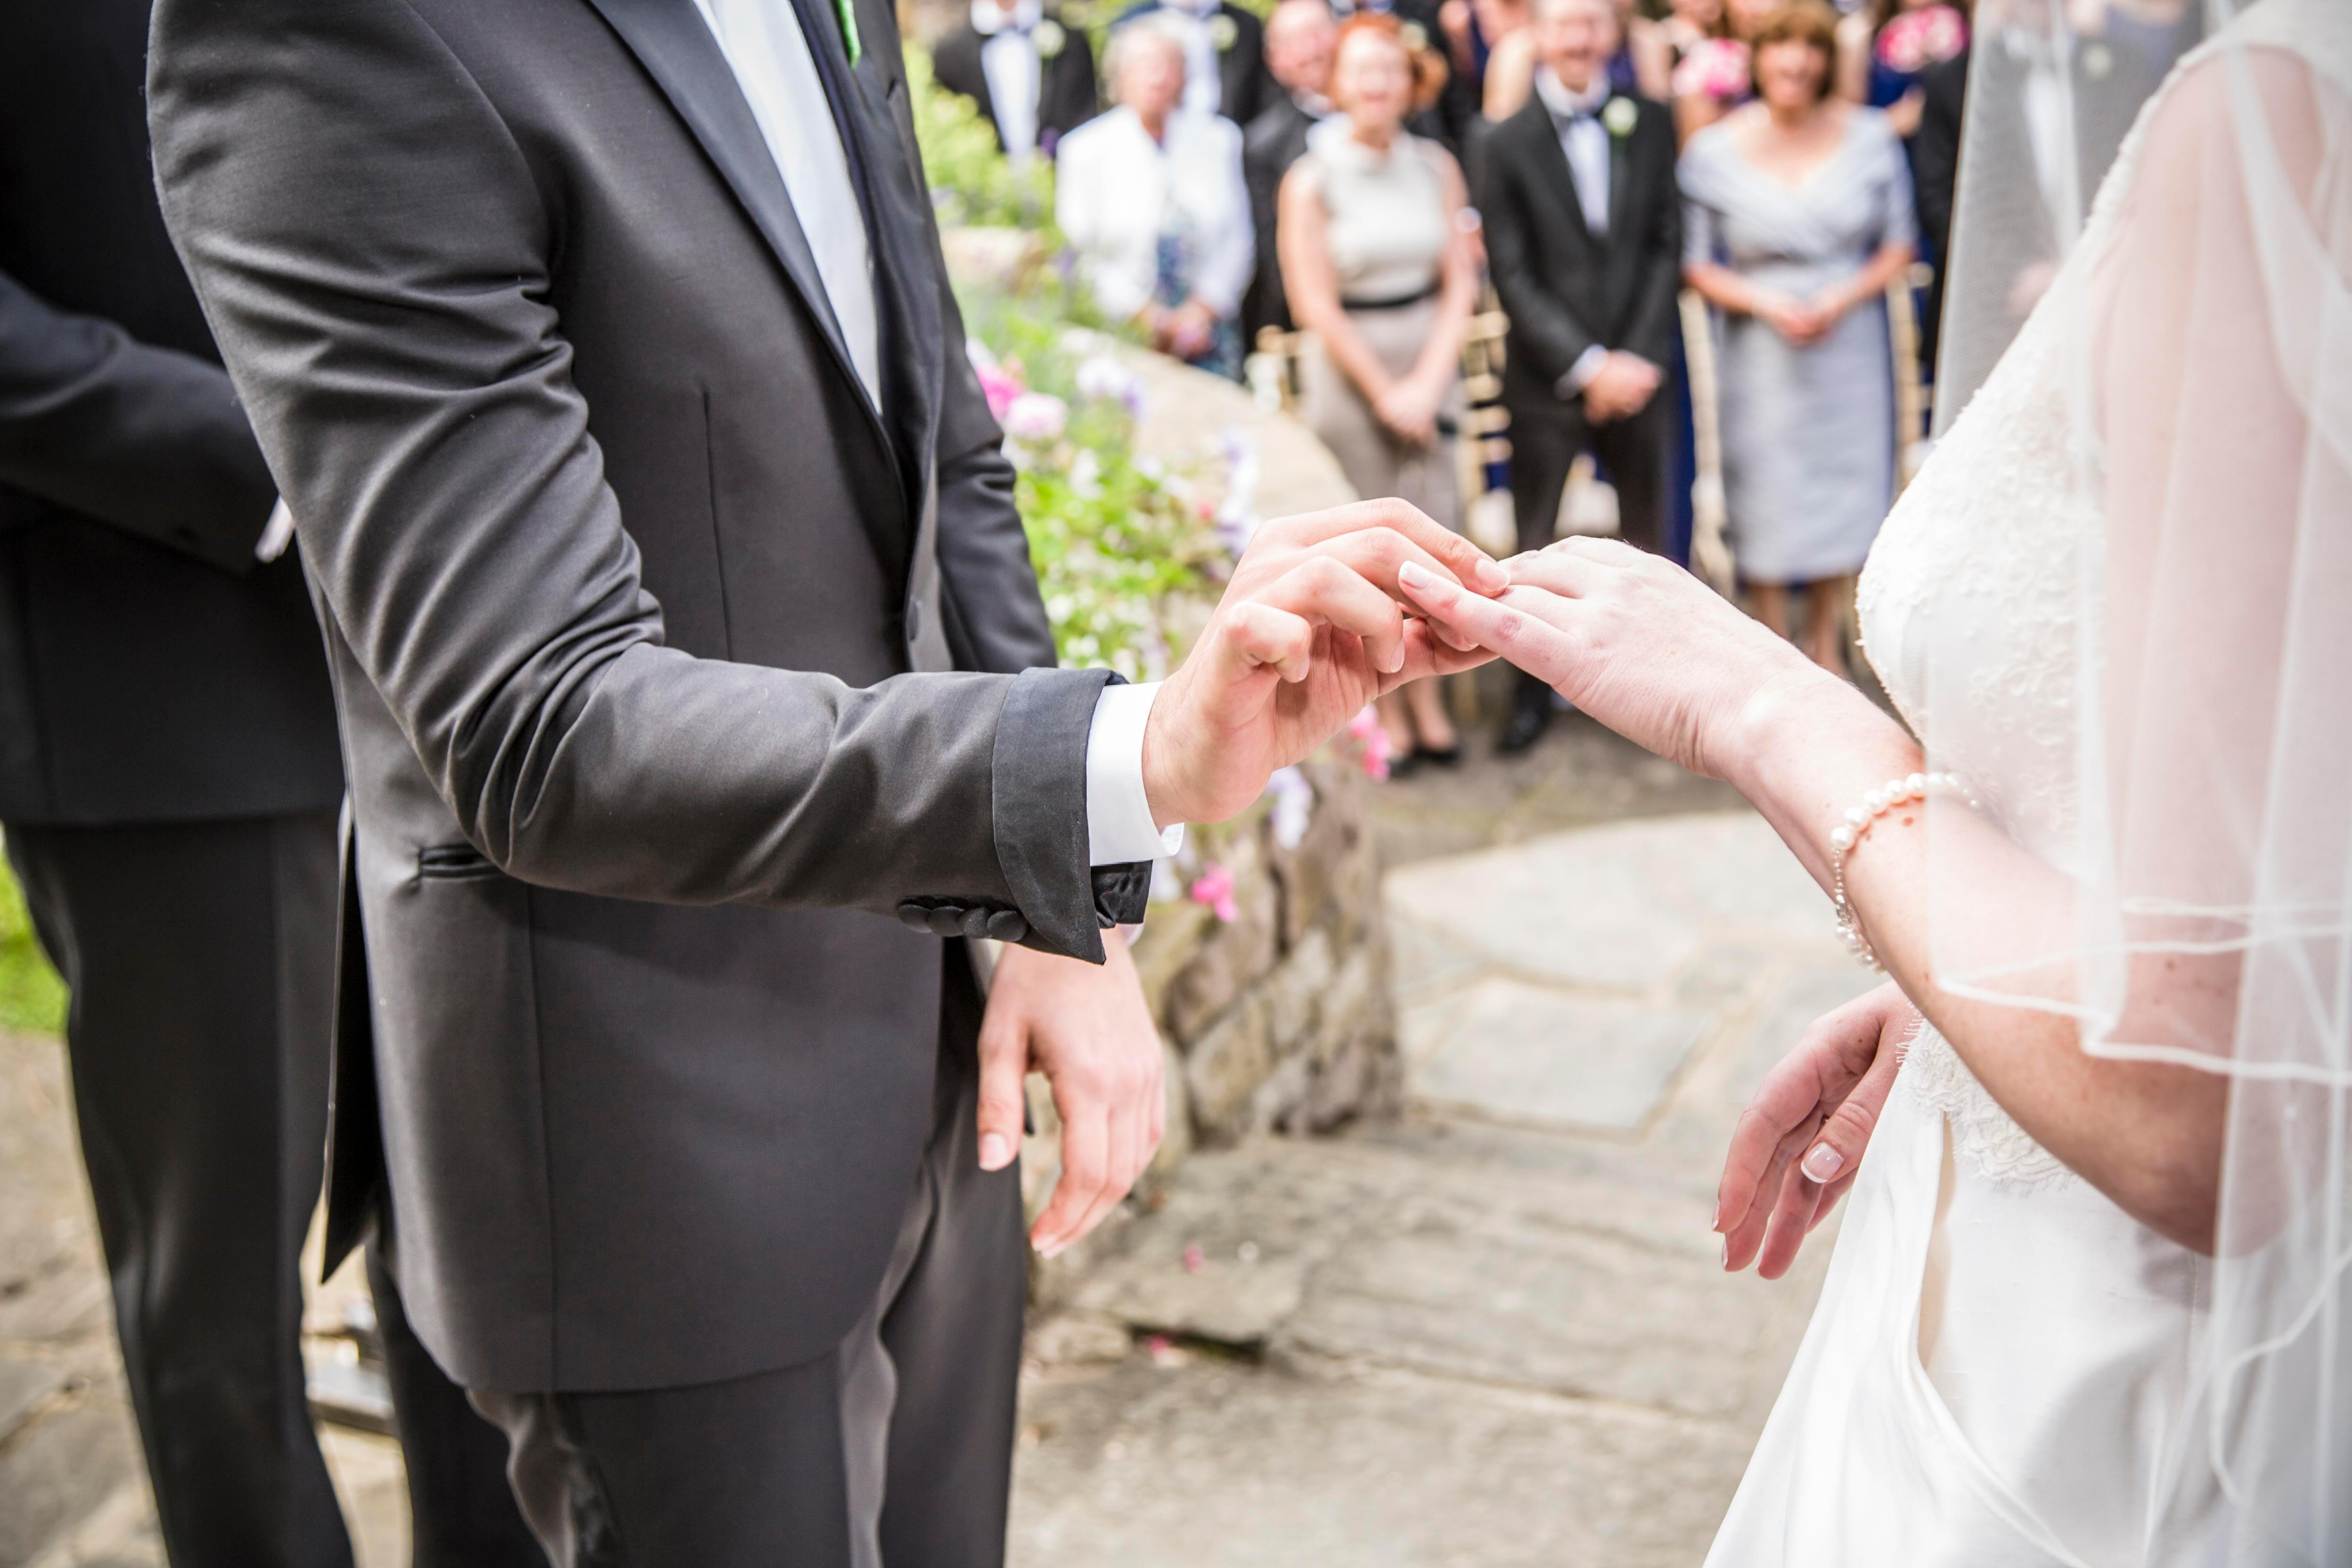 Deluded bridezilla demands guests pay £180 upfront to 'secure' a place at her wedding